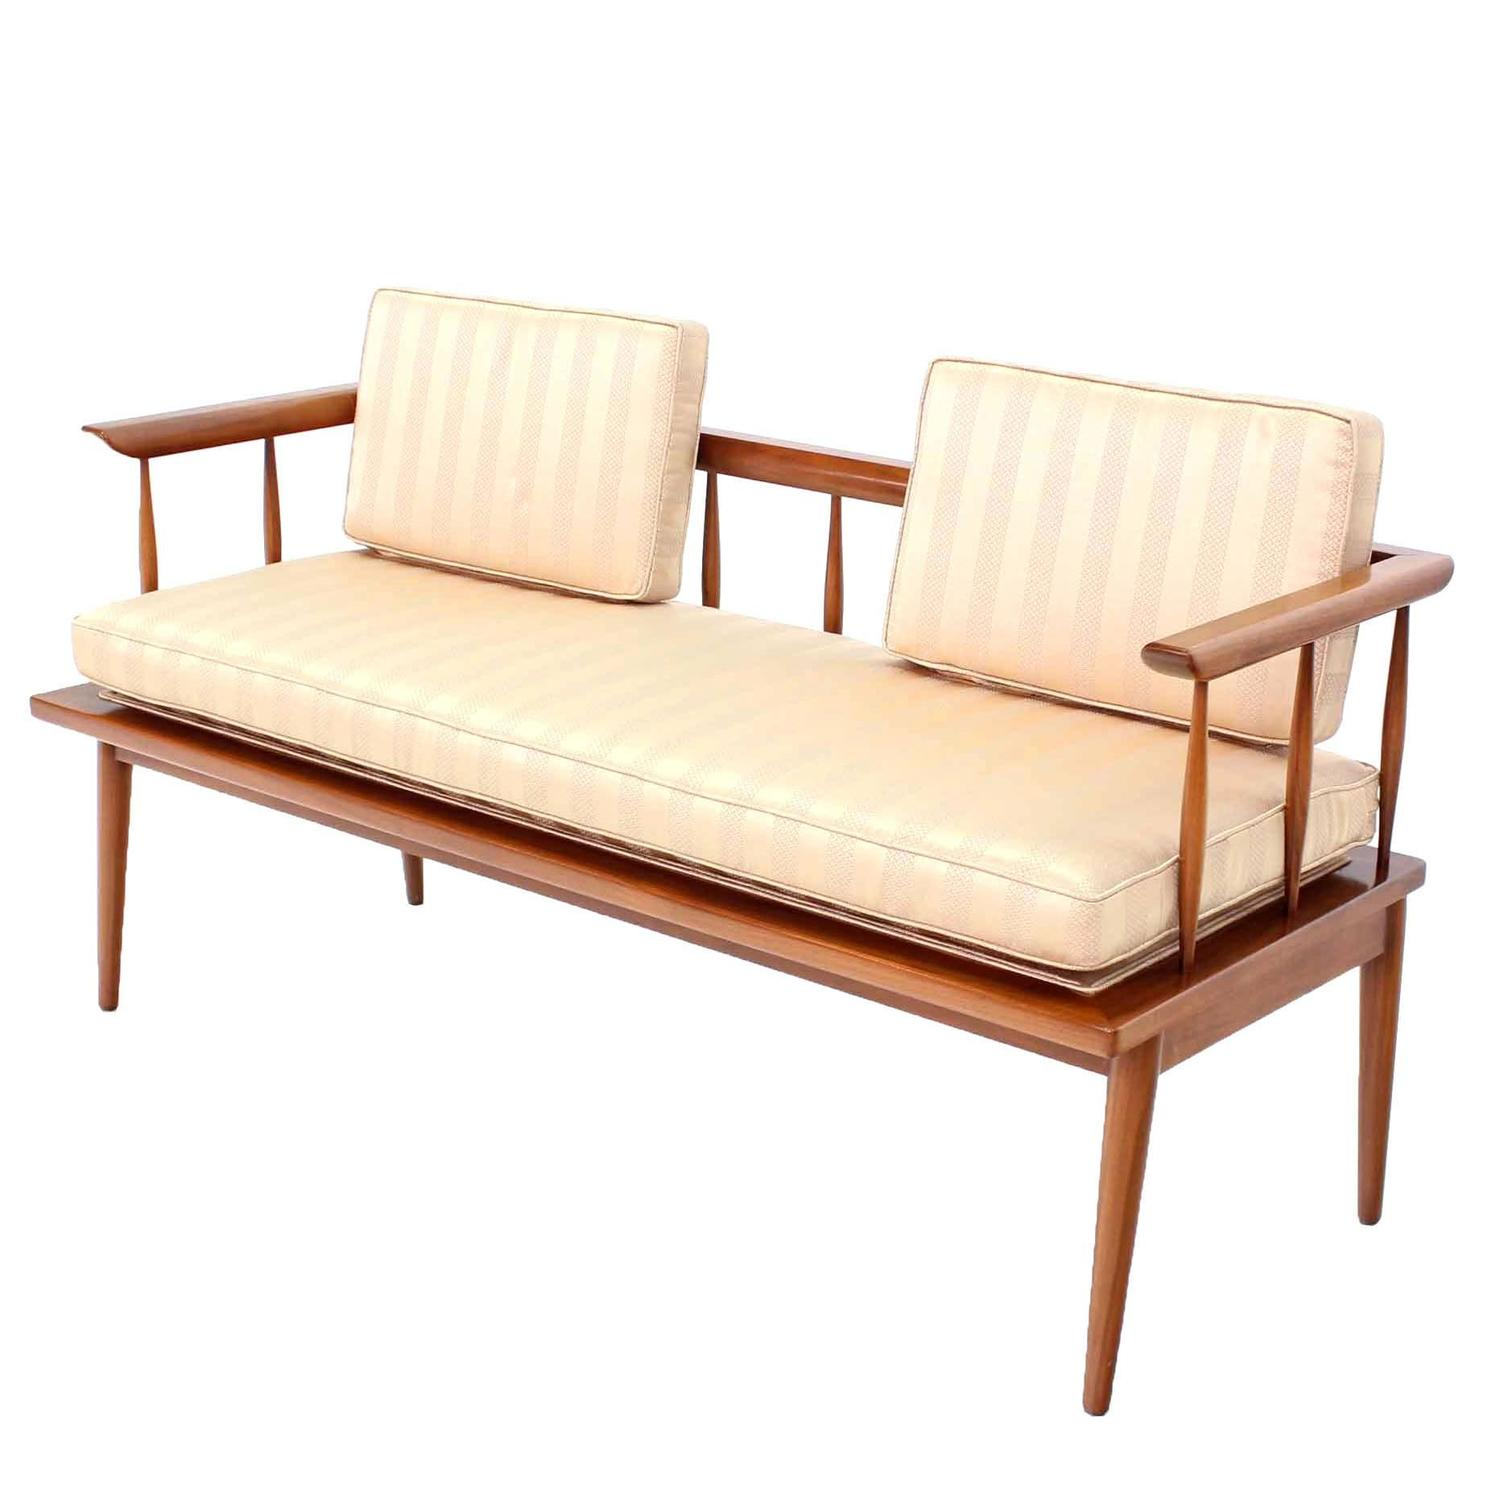 mid century modern shaker style bench for sale at 1stdibs